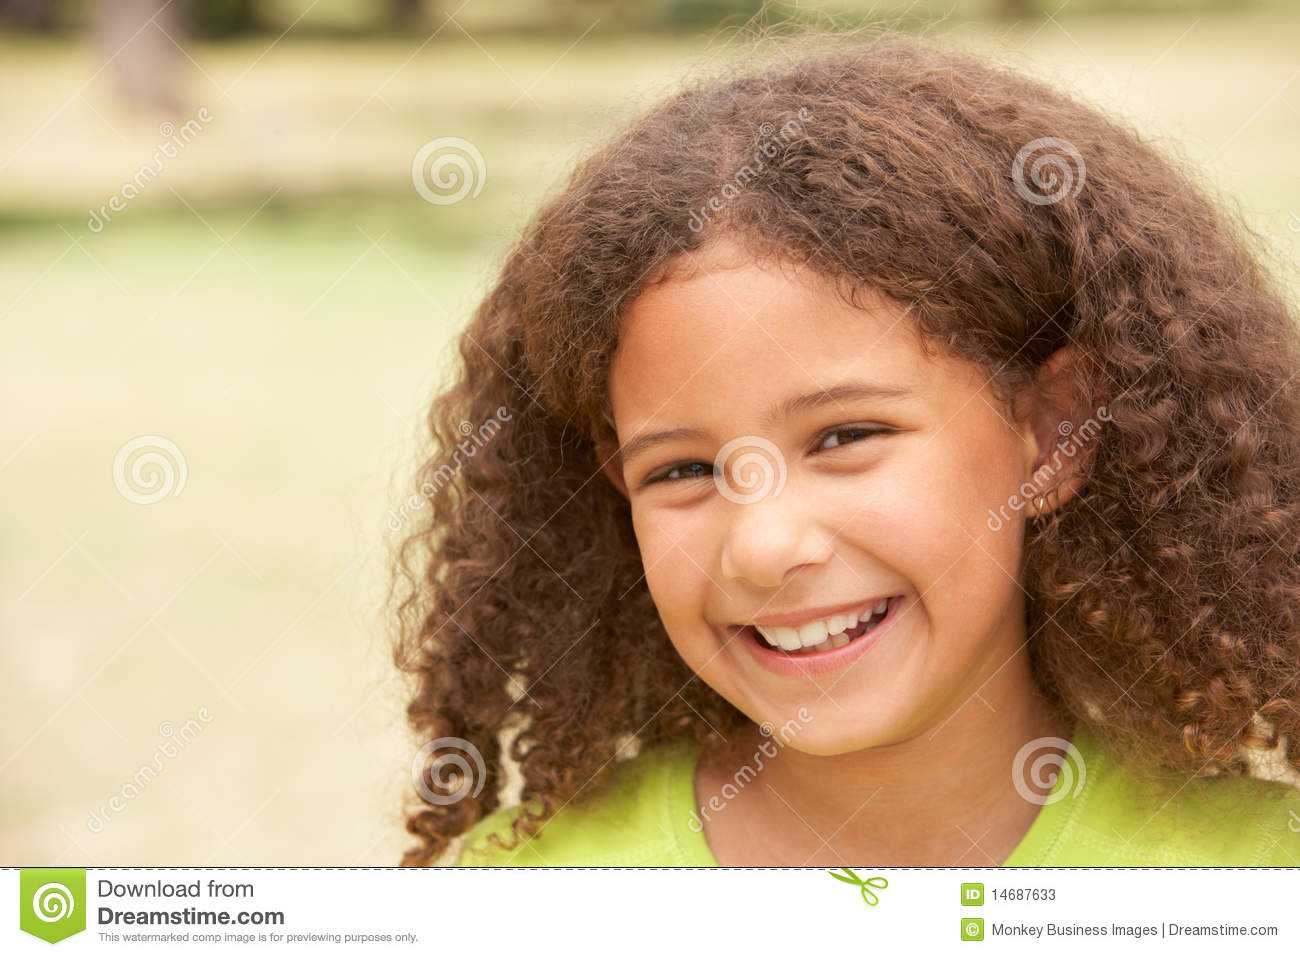 Portrait Of Happy Young Girl In Park